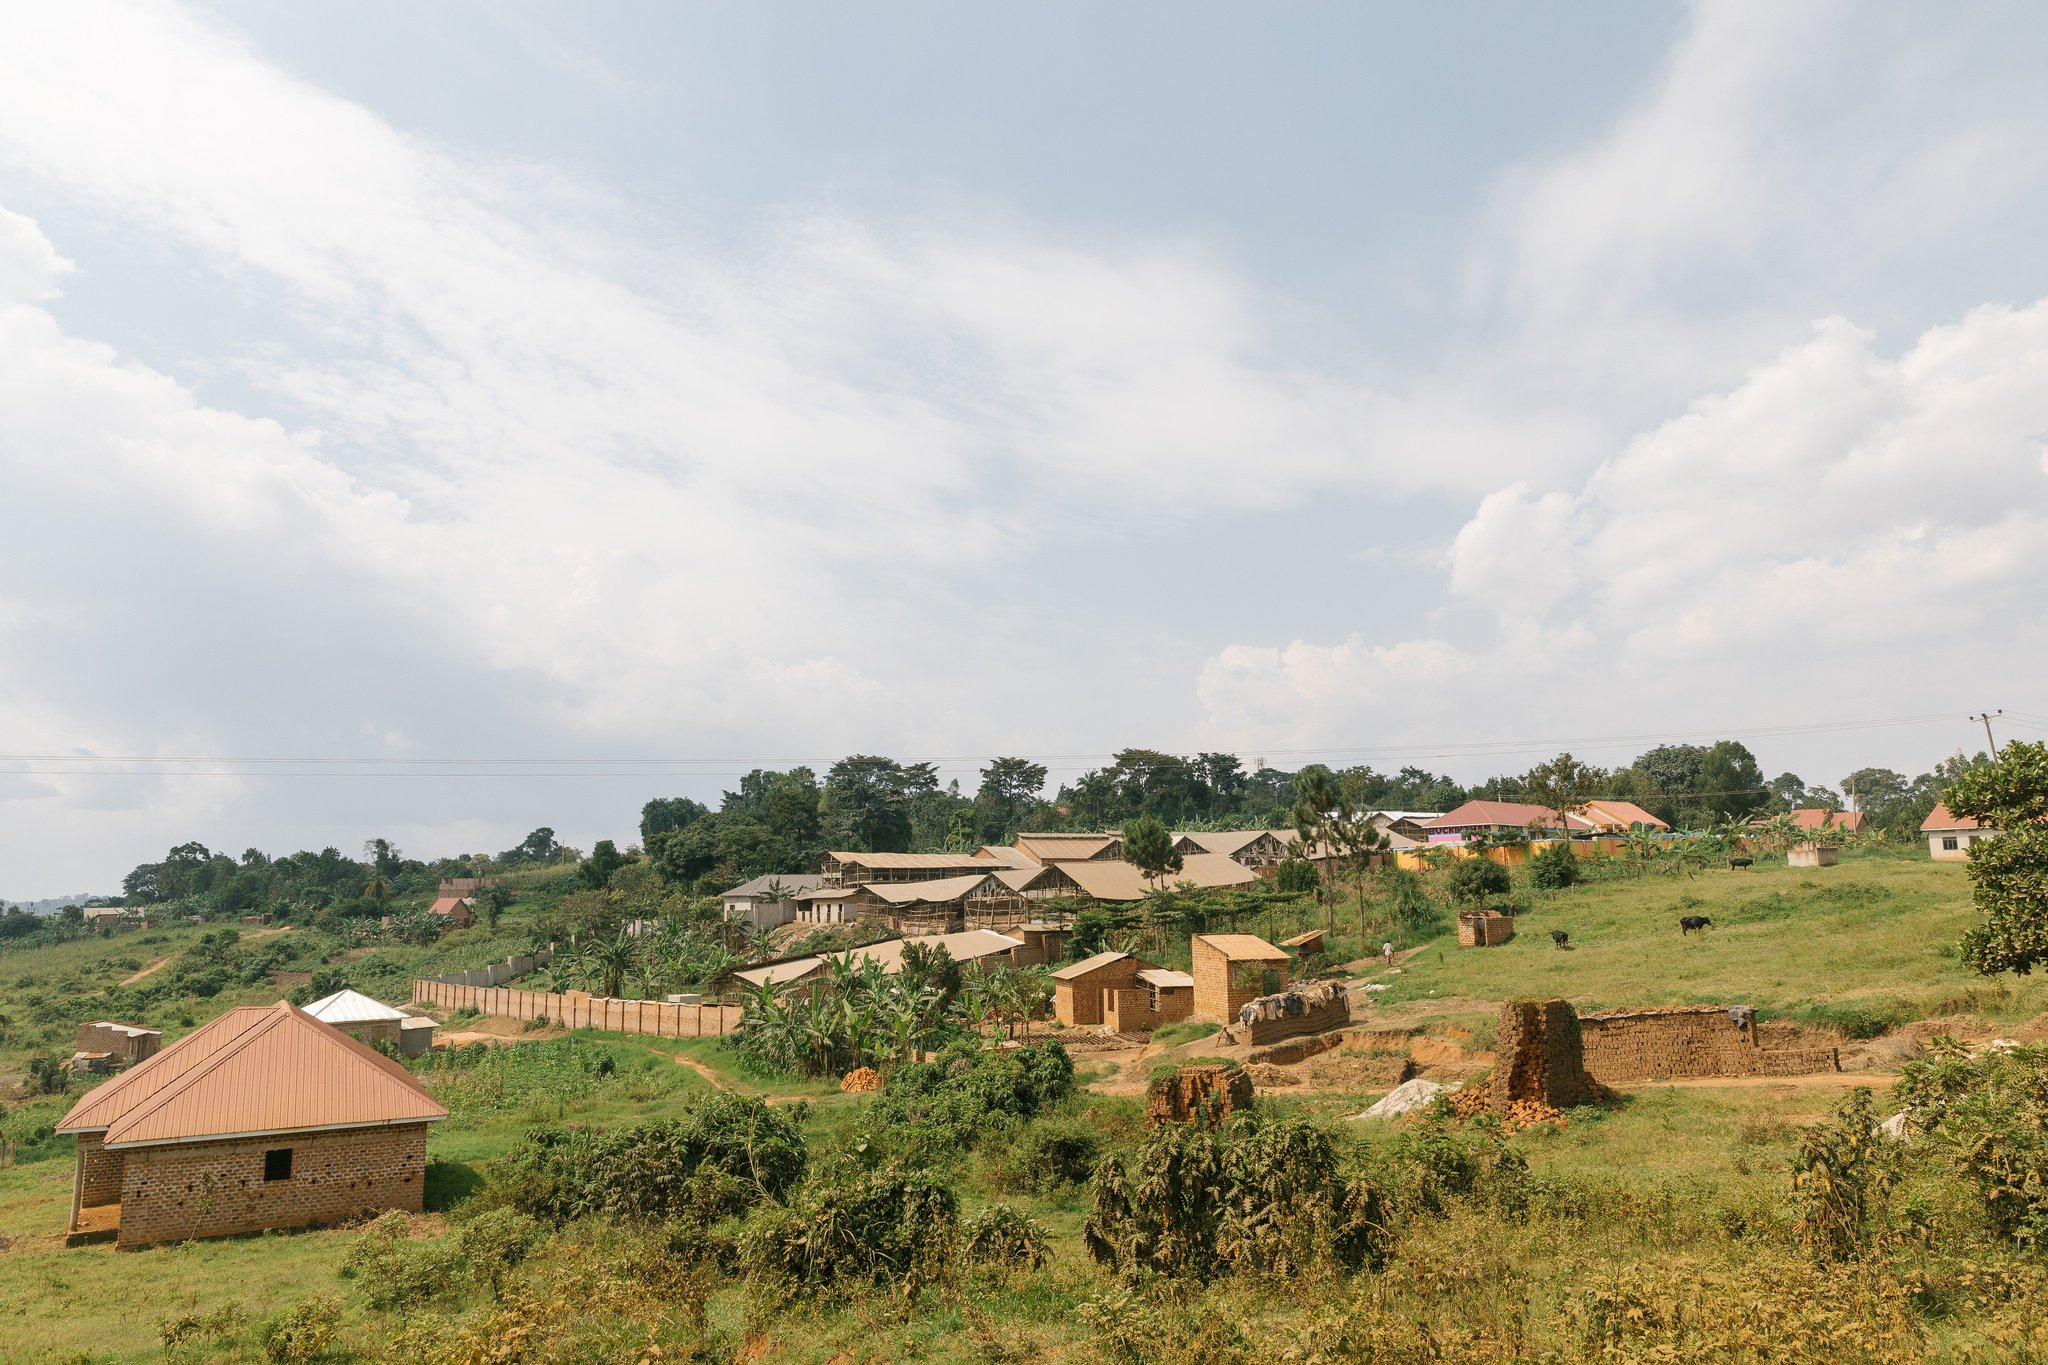 Village in rural Uganda